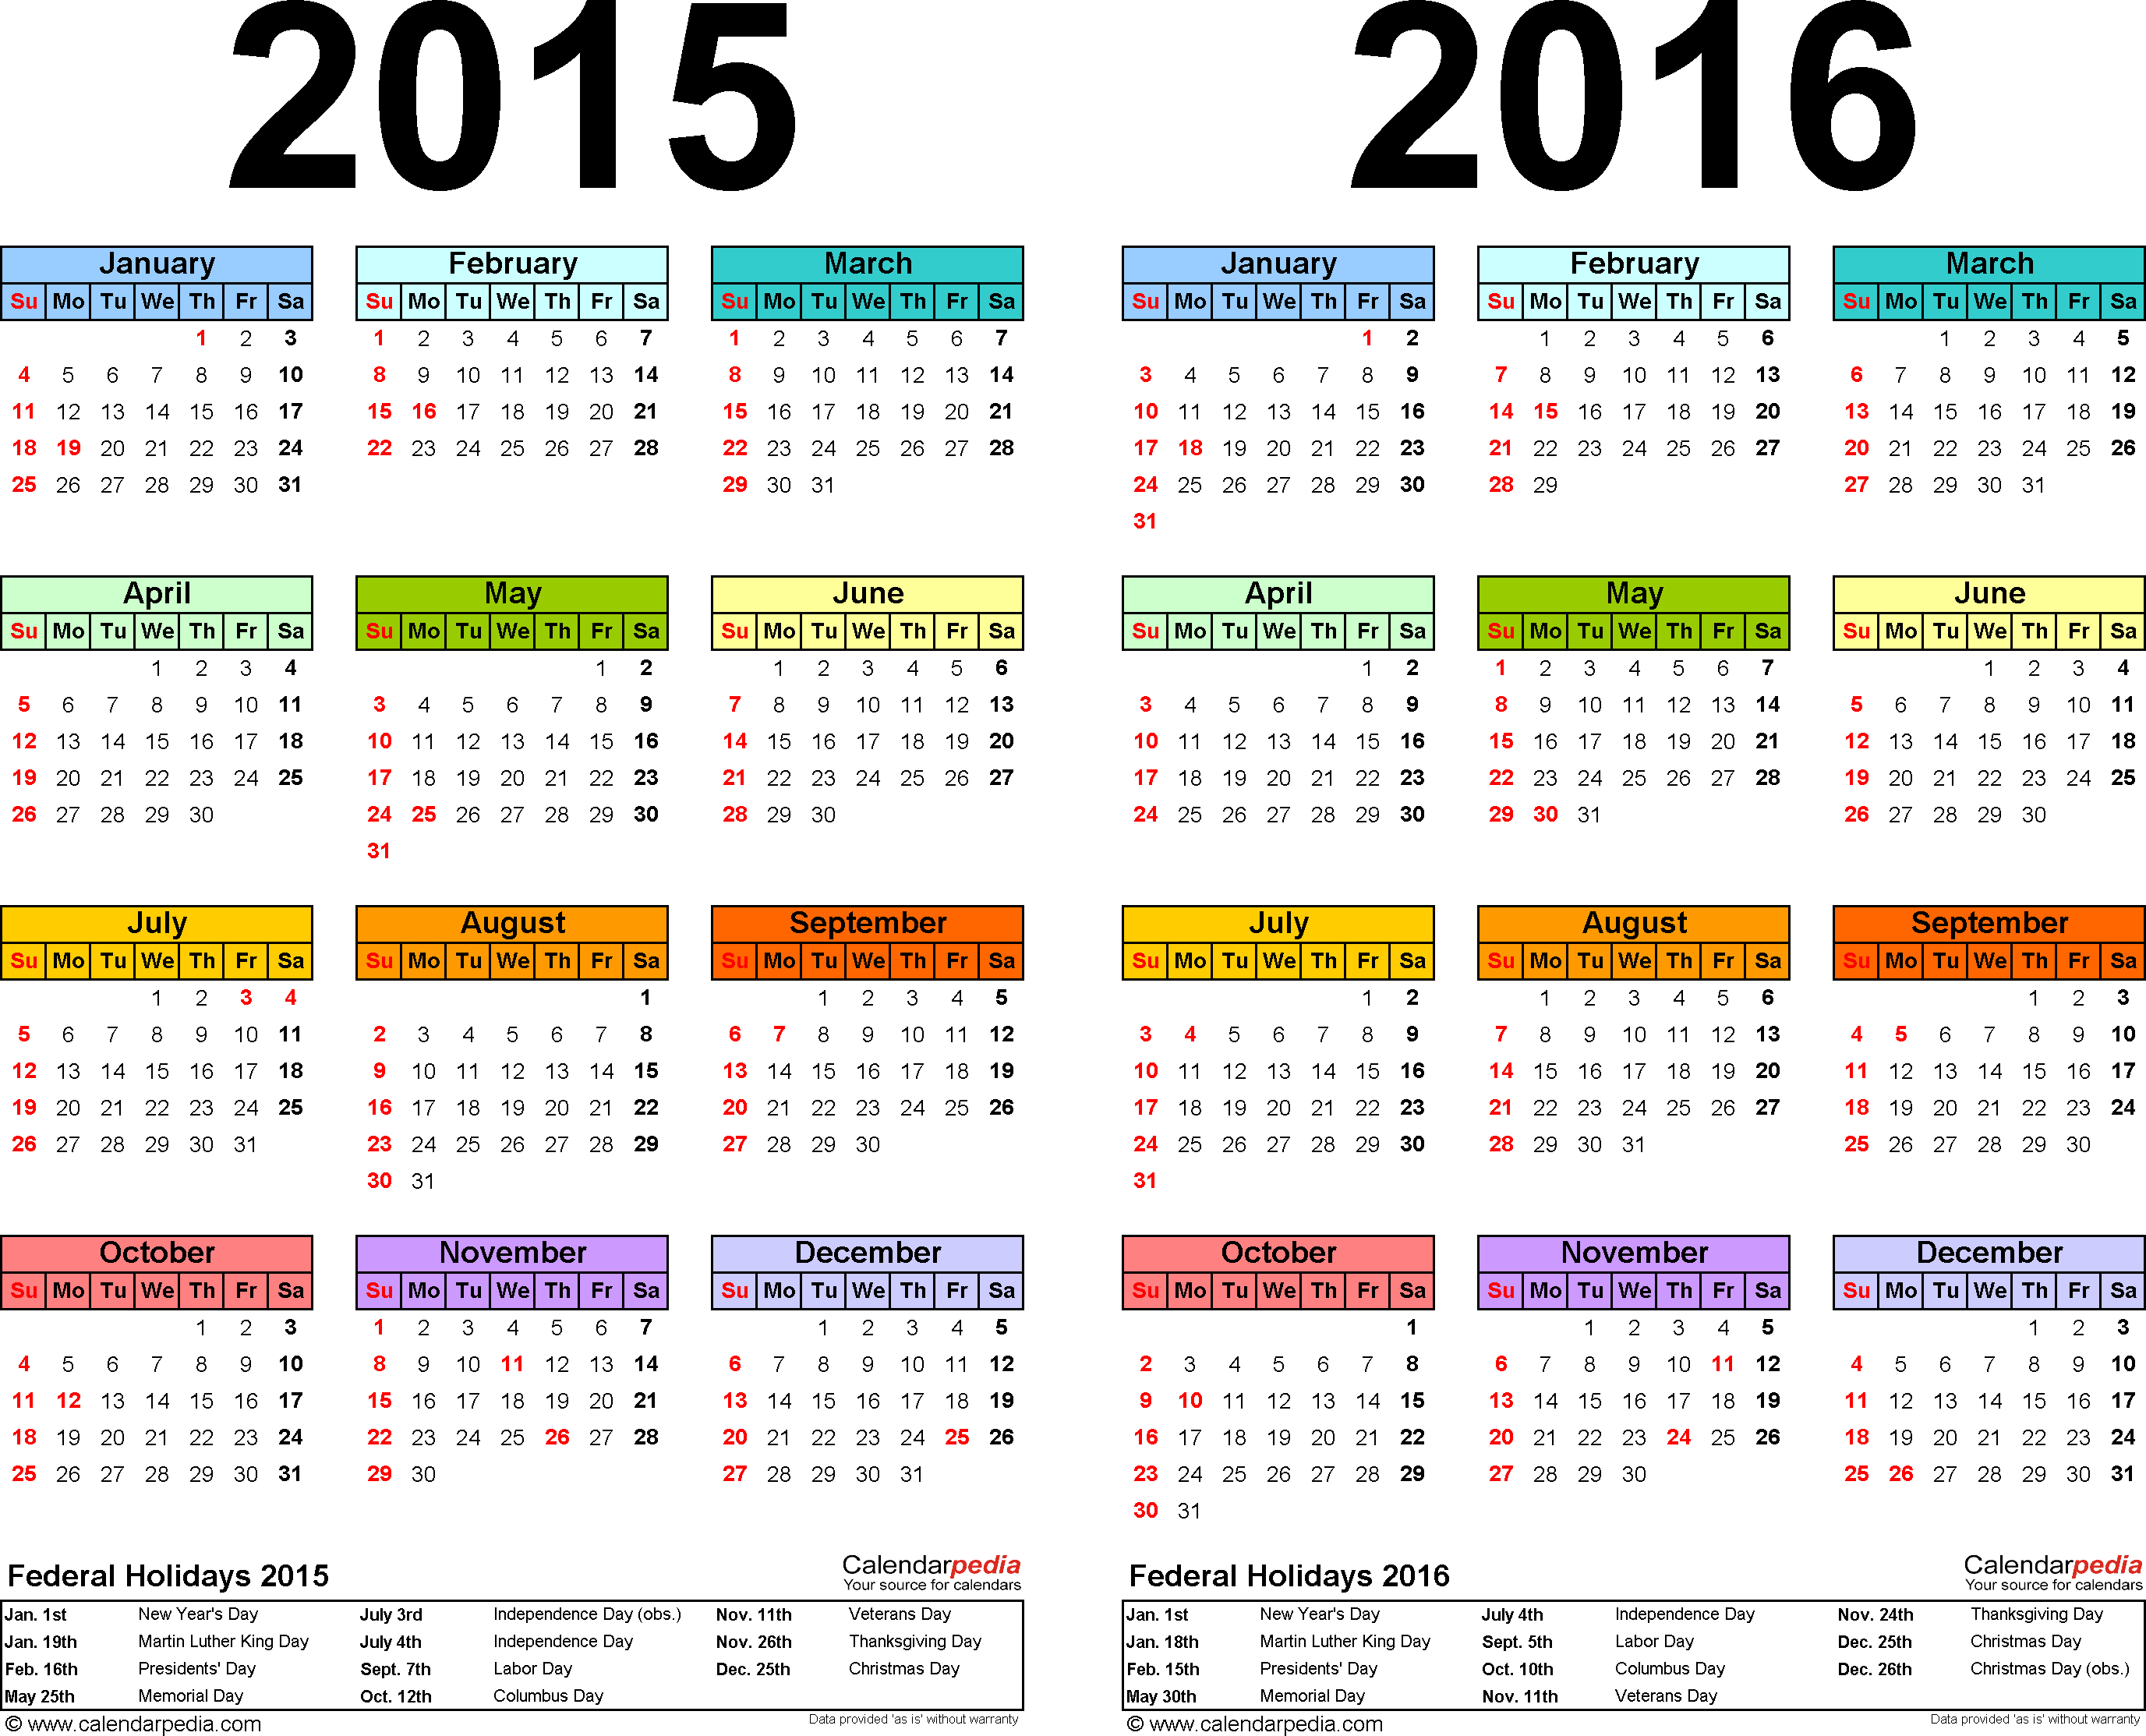 Template 2: PDF template for two year calendar 2015/2016 (landscape orientation, 1 page, in color)